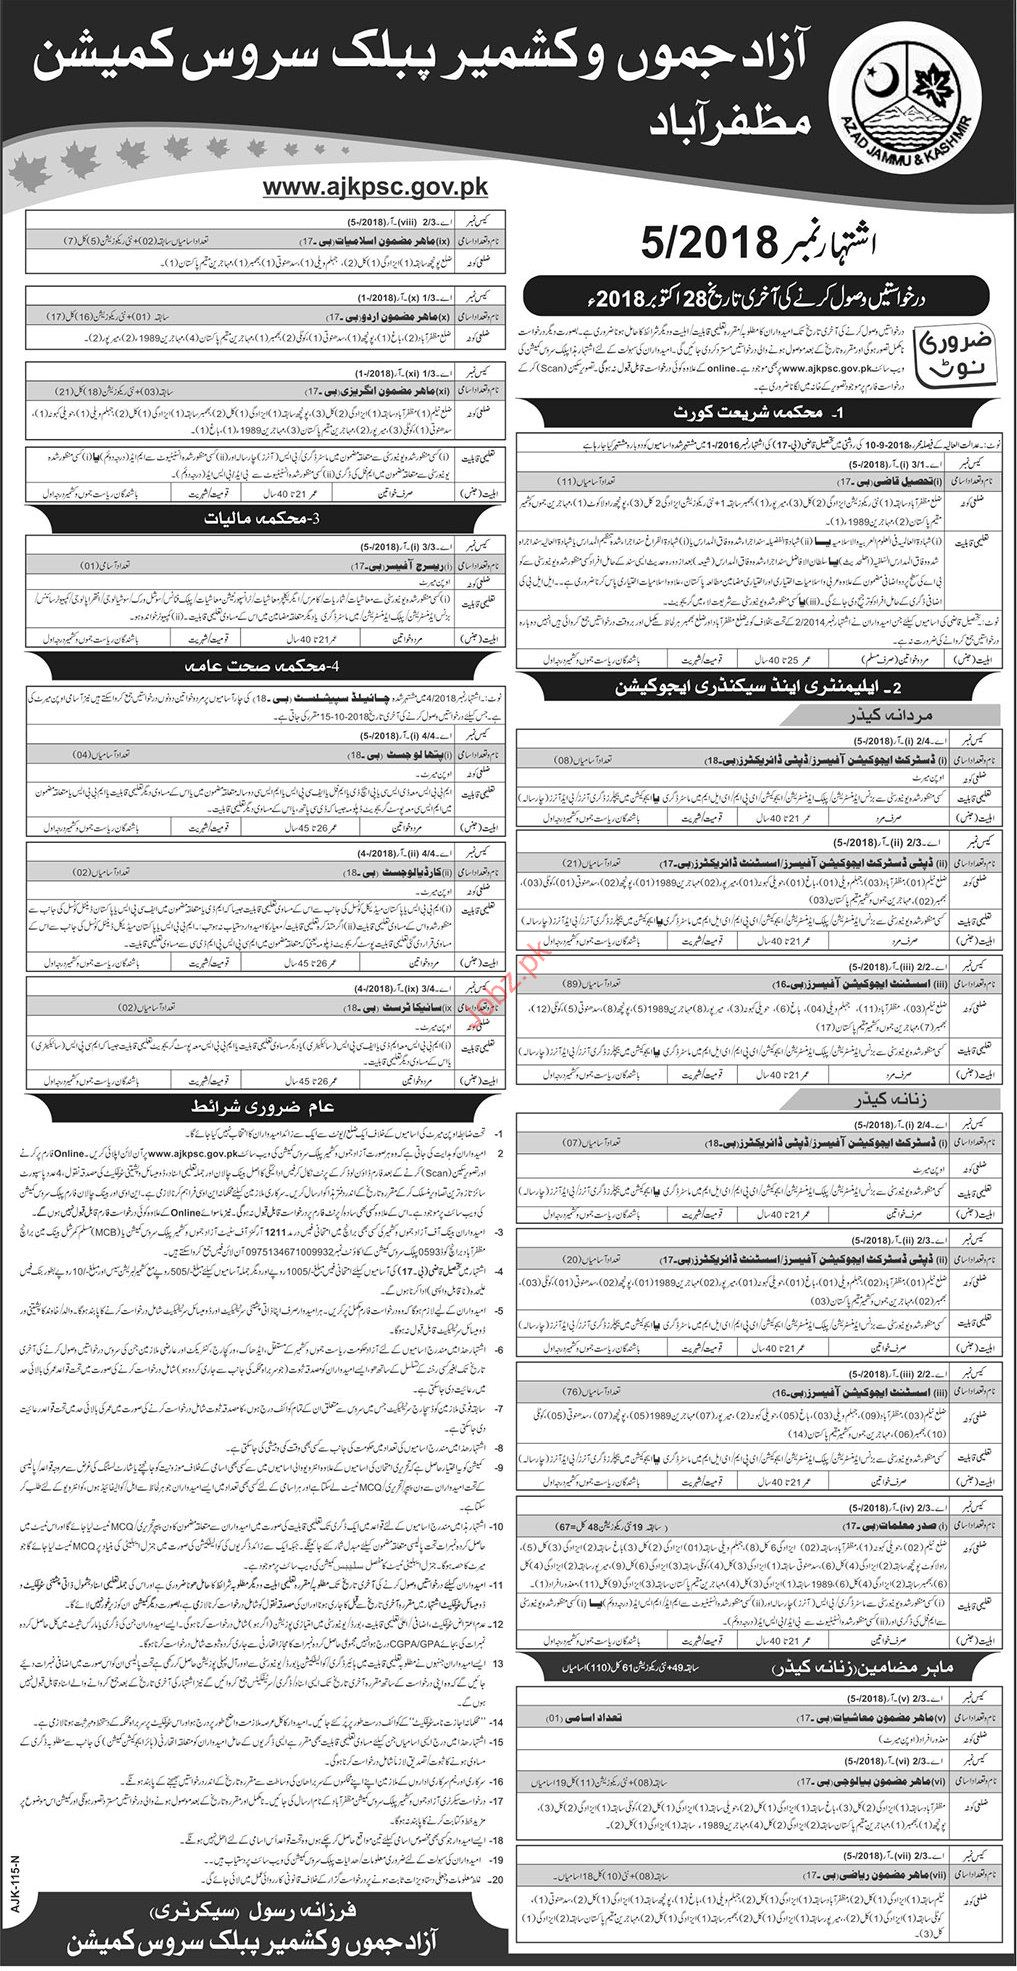 Judge Jobs in AJK Public Service Commission